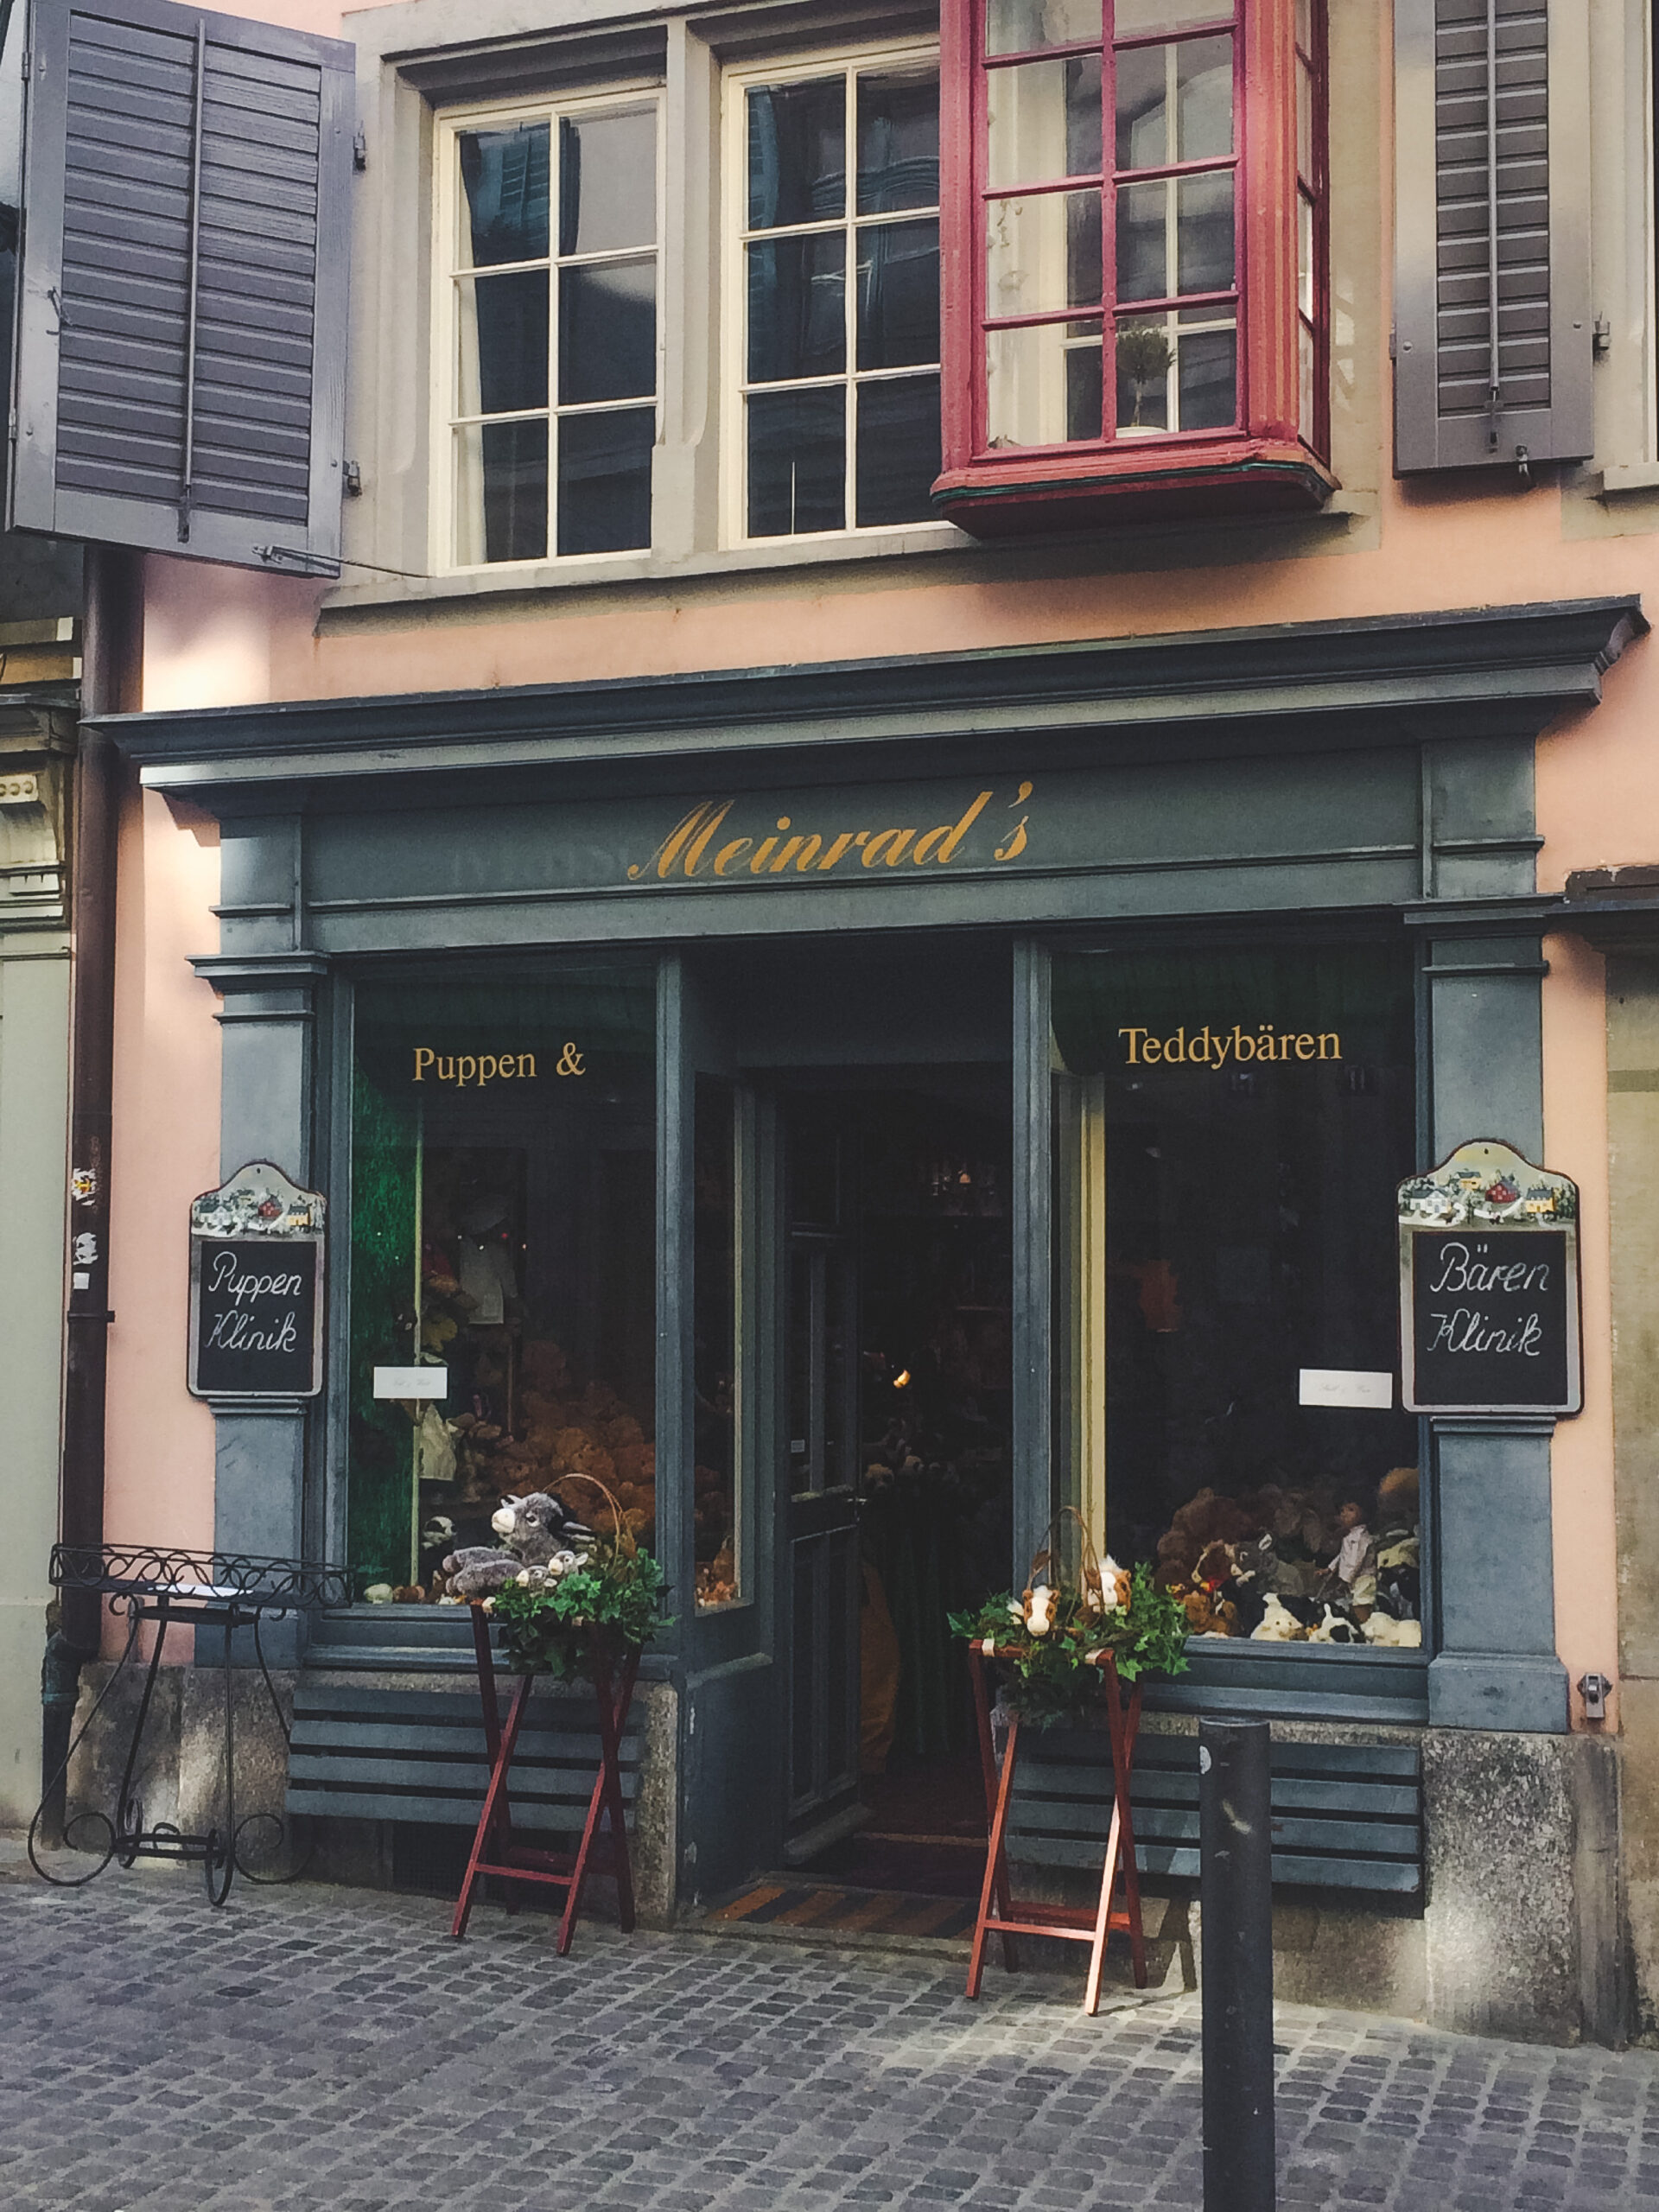 Meinrad's Puppen & Teddybären is an adorable shop that is the epitome of Old Town Zürich